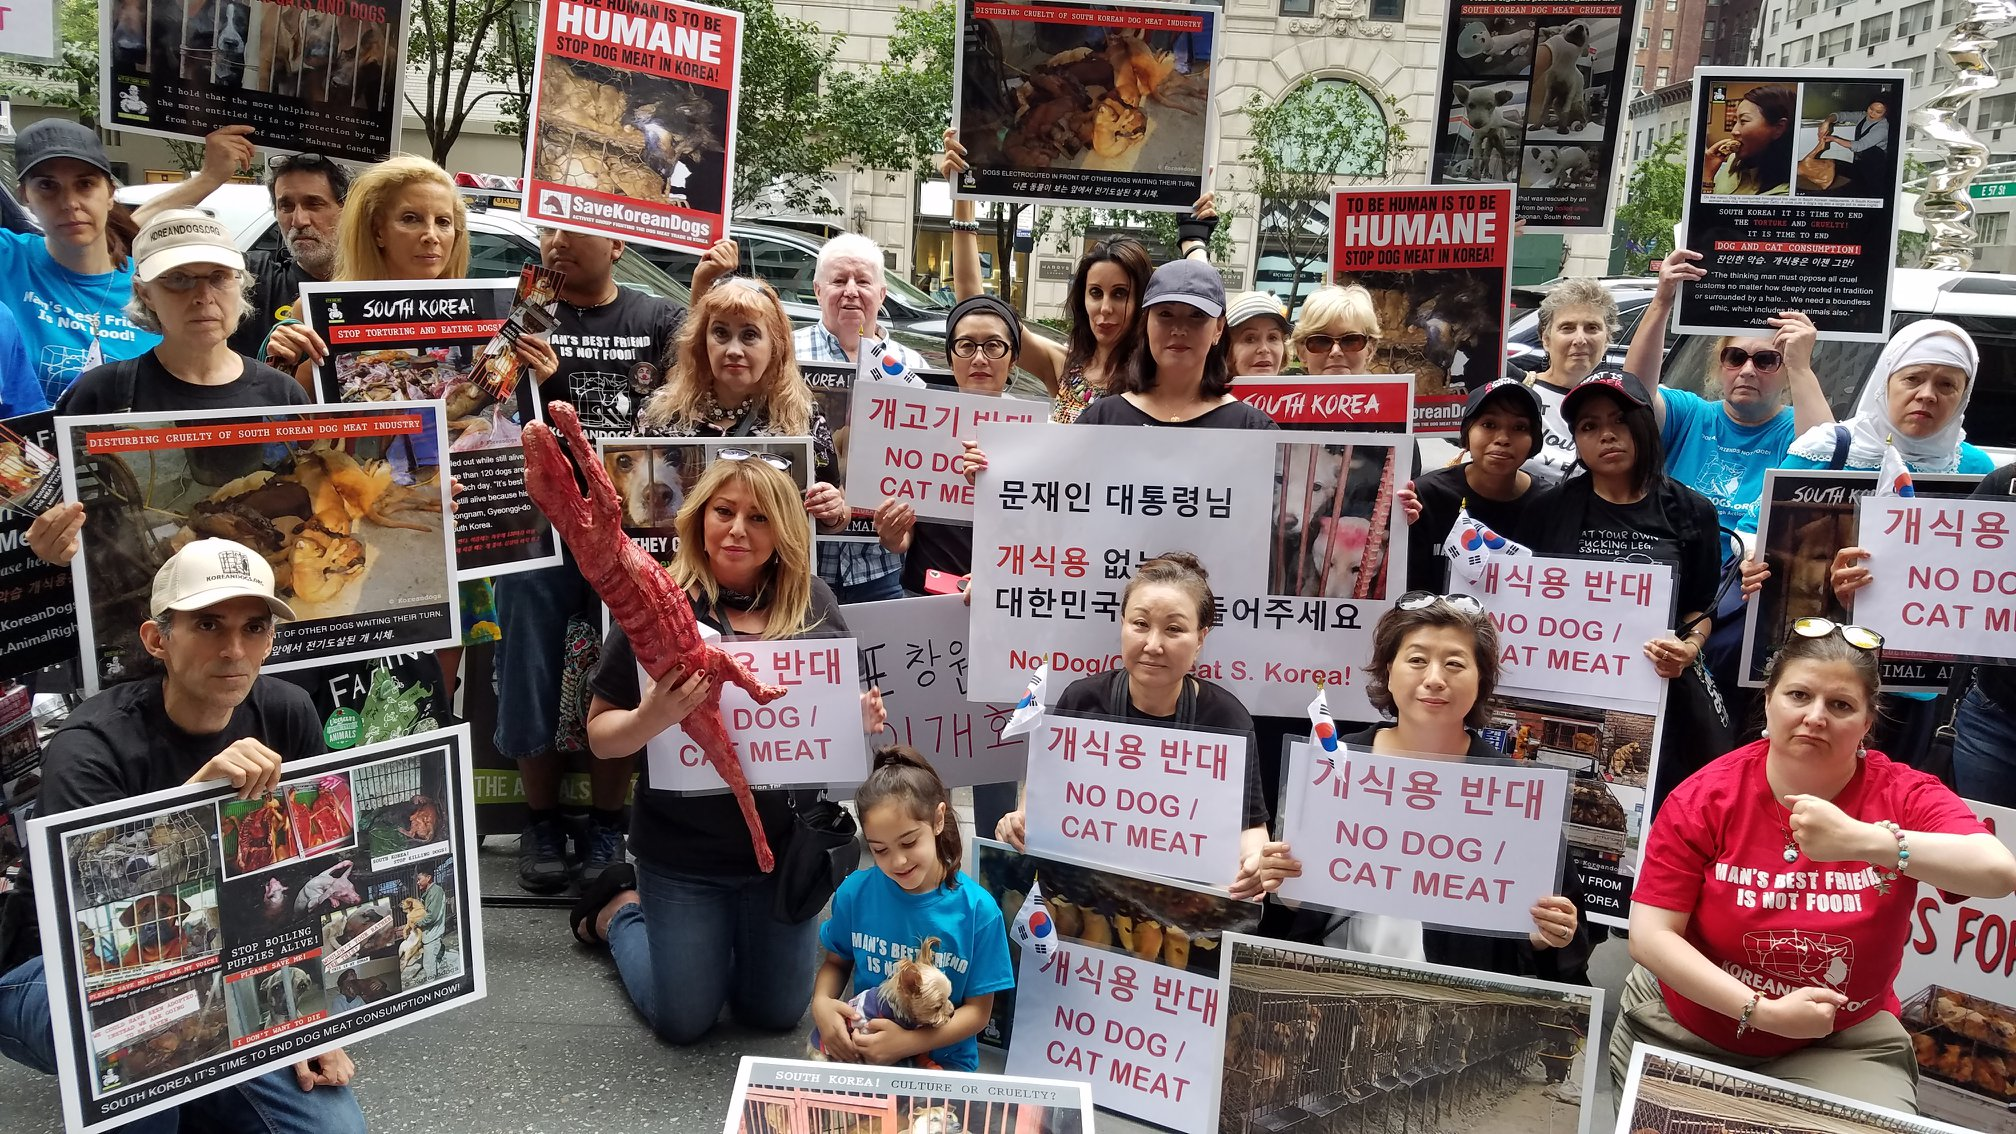 http://koreandogs.org/ny-demo-july-30-2018/?utm_source=sendinblue&utm_campaign=Exposing_Seongnams_Illegal_Dog_Slaughterhouses__New_Calls_for_Action!&utm_medium=email